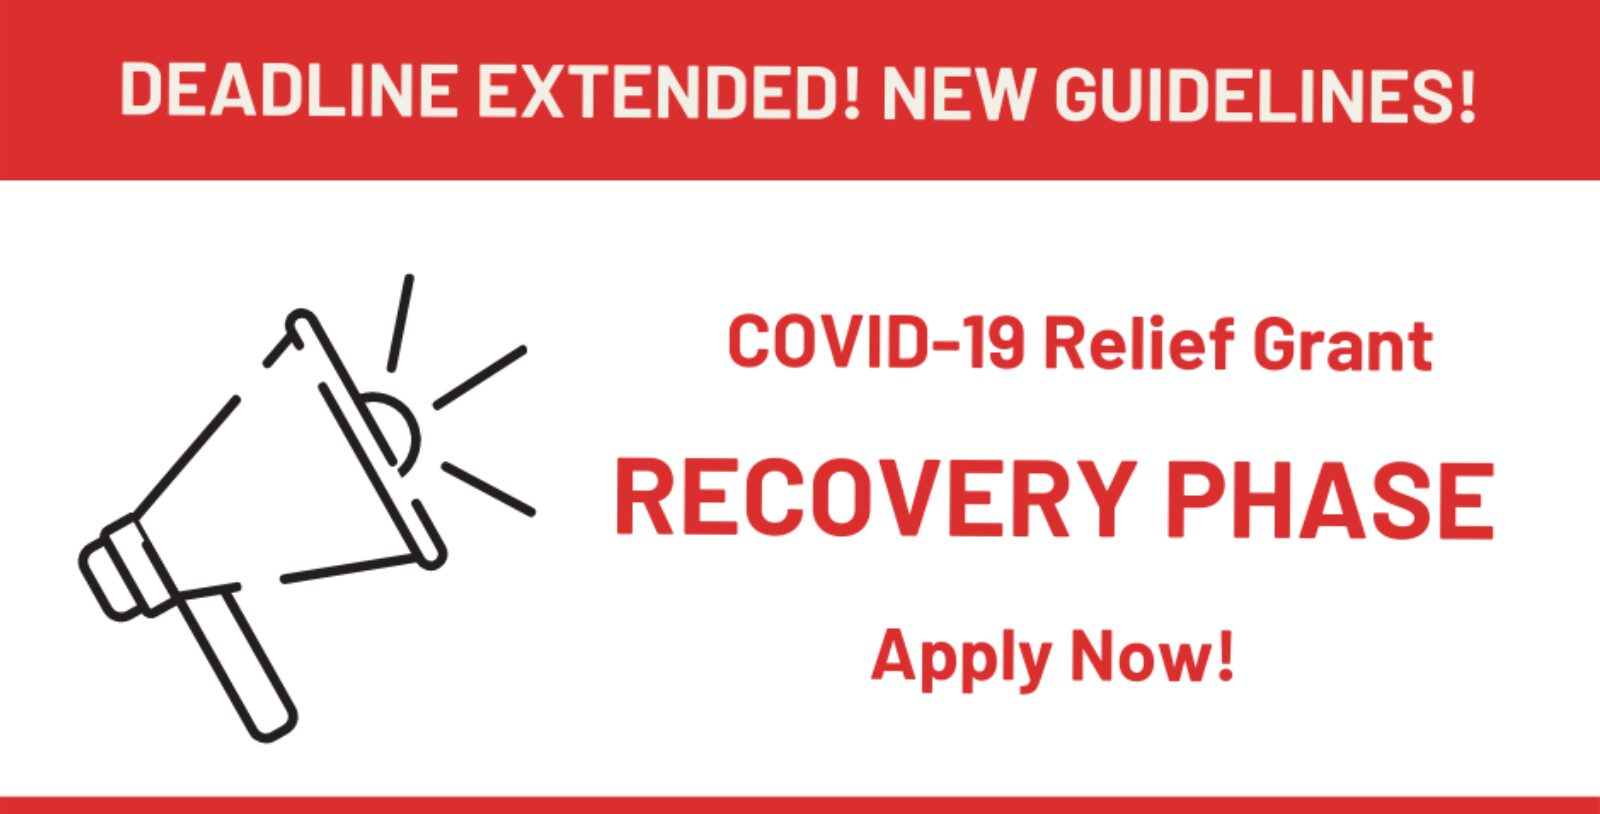 NEW Deadline for Recovery Grant application is Friday, July 31, 2020